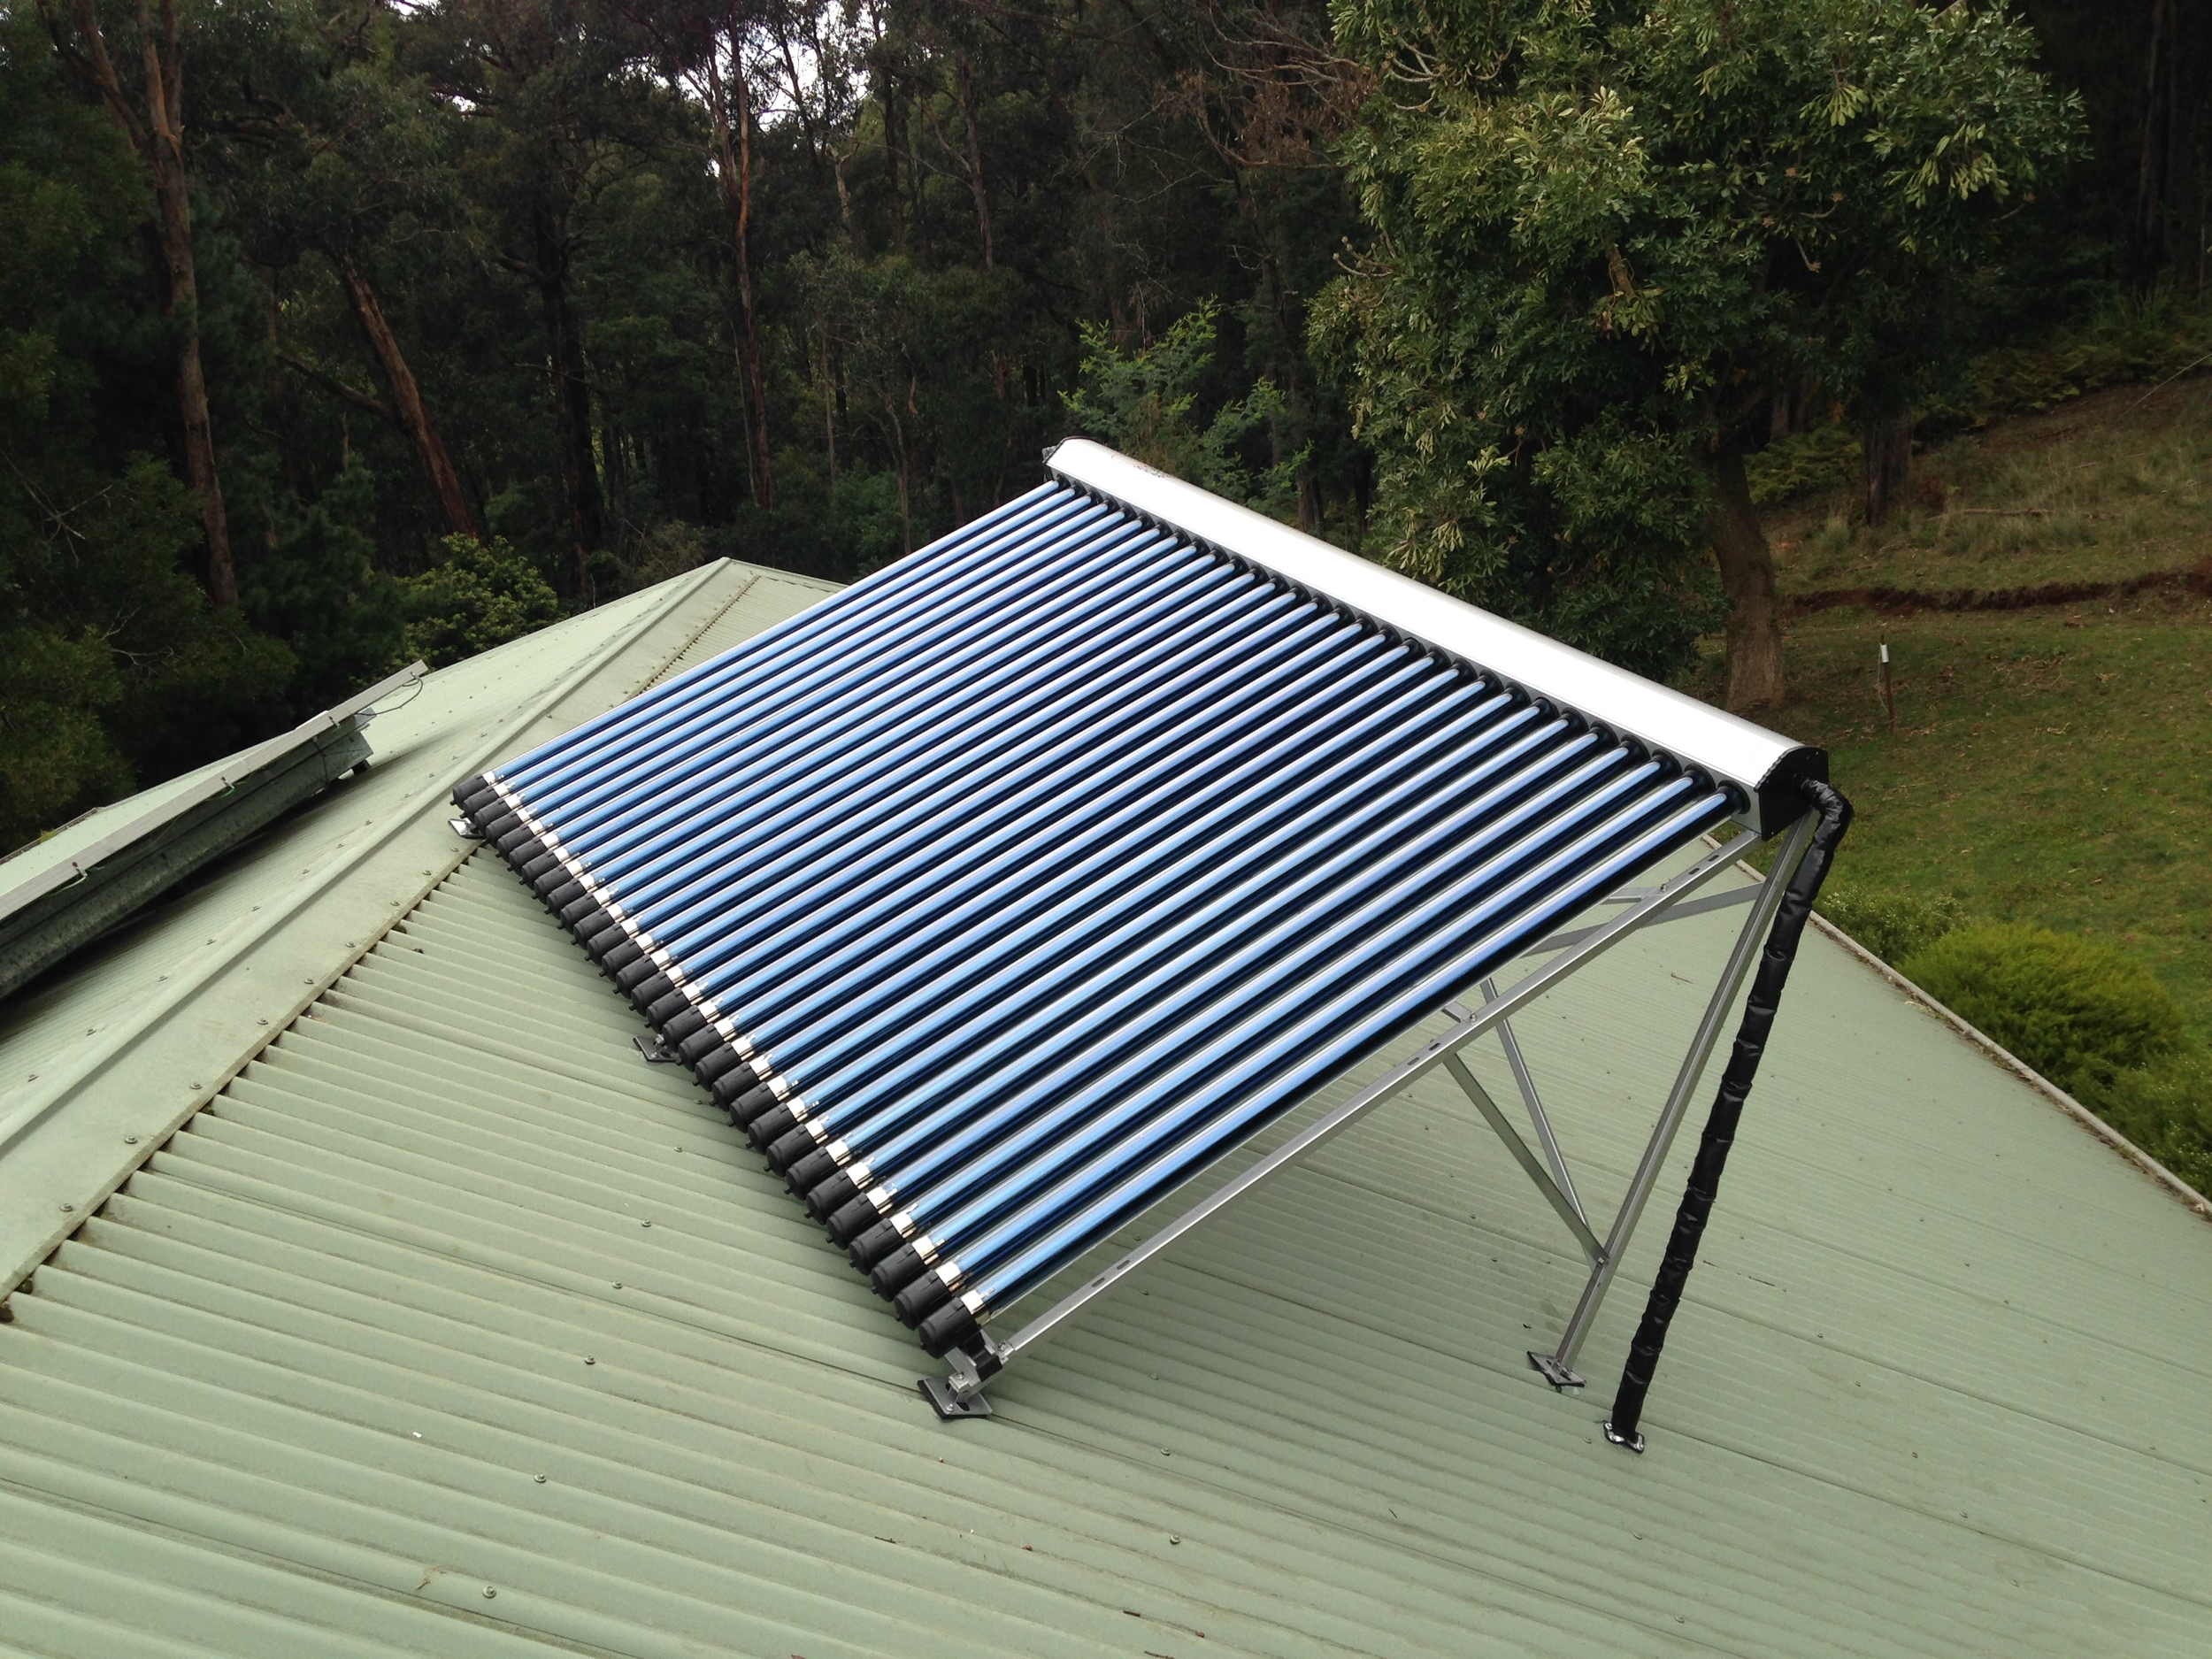 30 Evacuated tube manifold installed in Avonsleigh, Victoria. Heat pipes can be mounted on a side pitch frame as shown in the above picture.